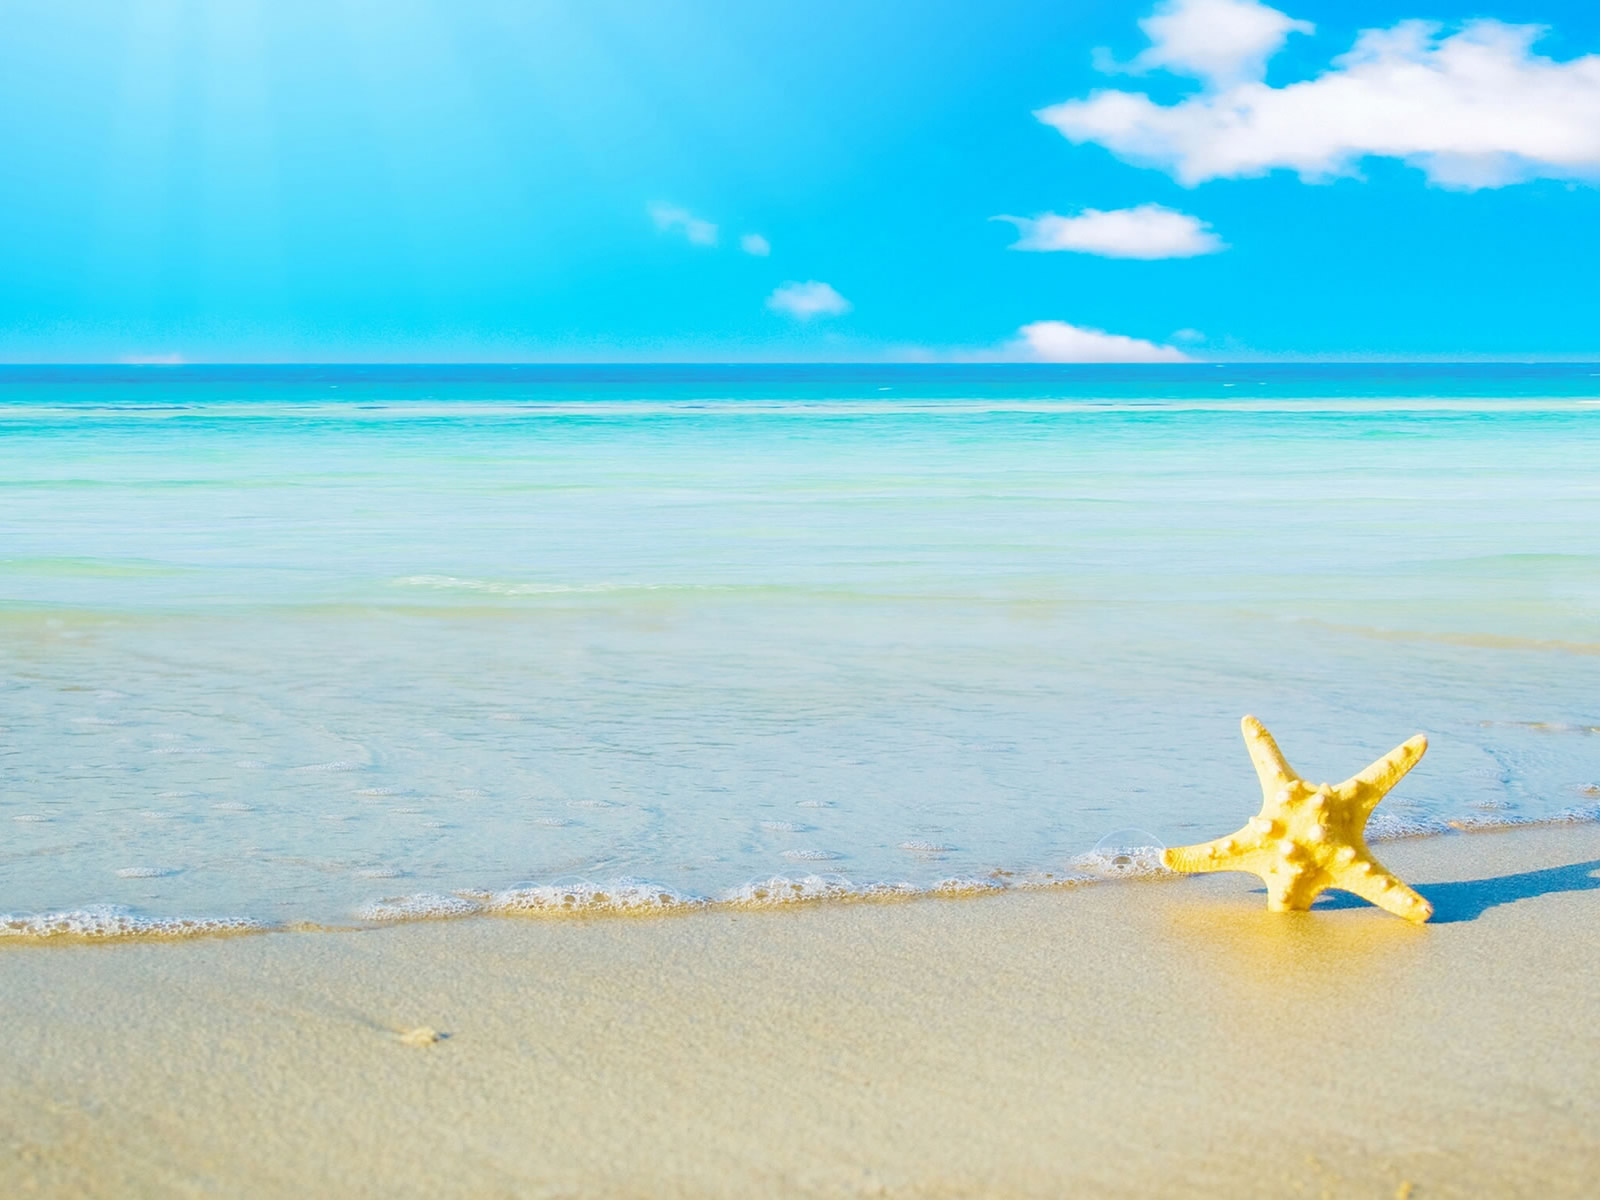 Sea Star on a Beach 439.49 Kb